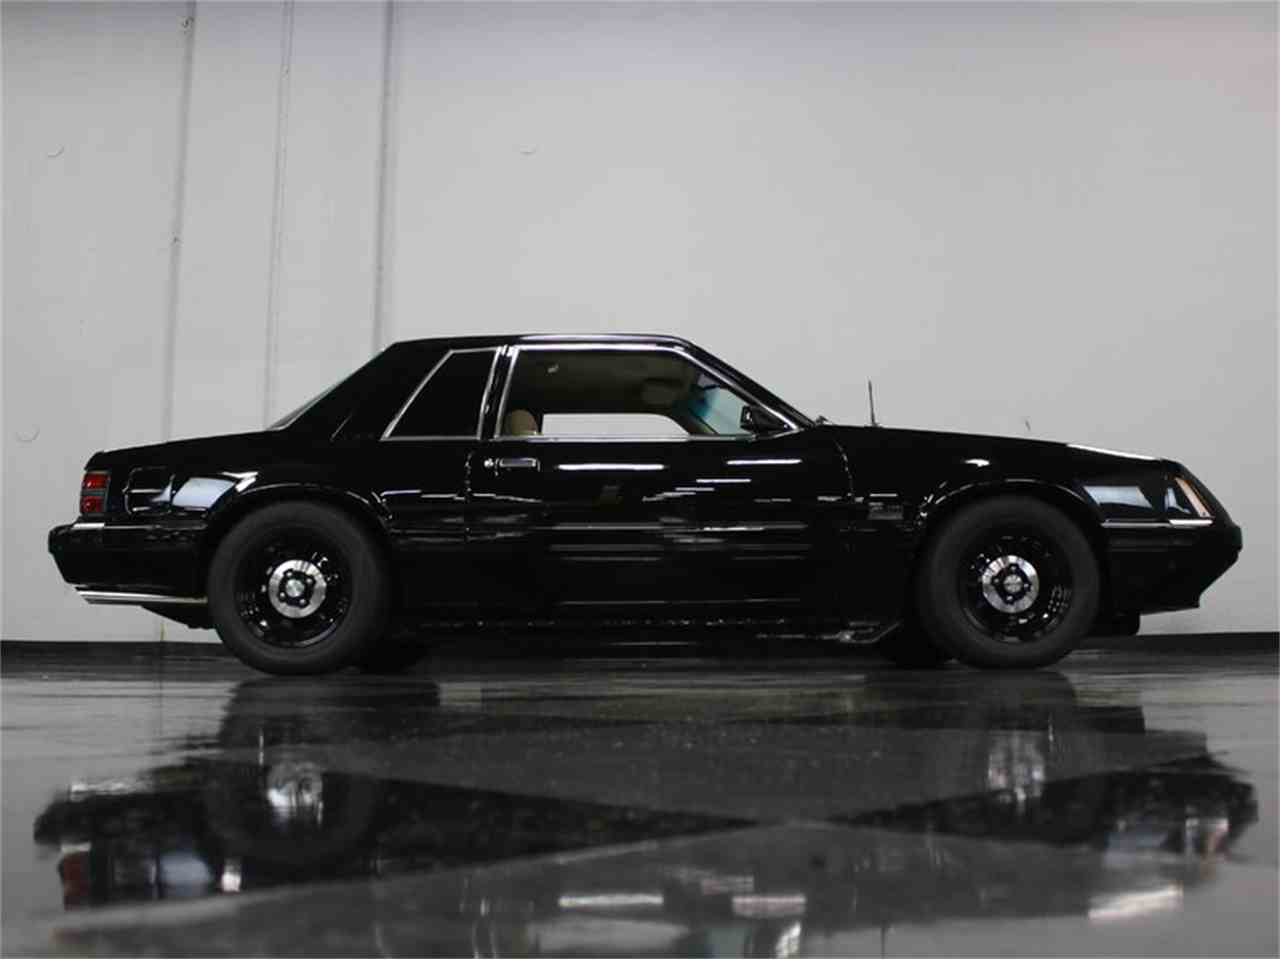 Large Picture of 1986 Mustang SSP Interceptor located in Texas - $24,995.00 Offered by Streetside Classics - Dallas / Fort Worth - JZNT